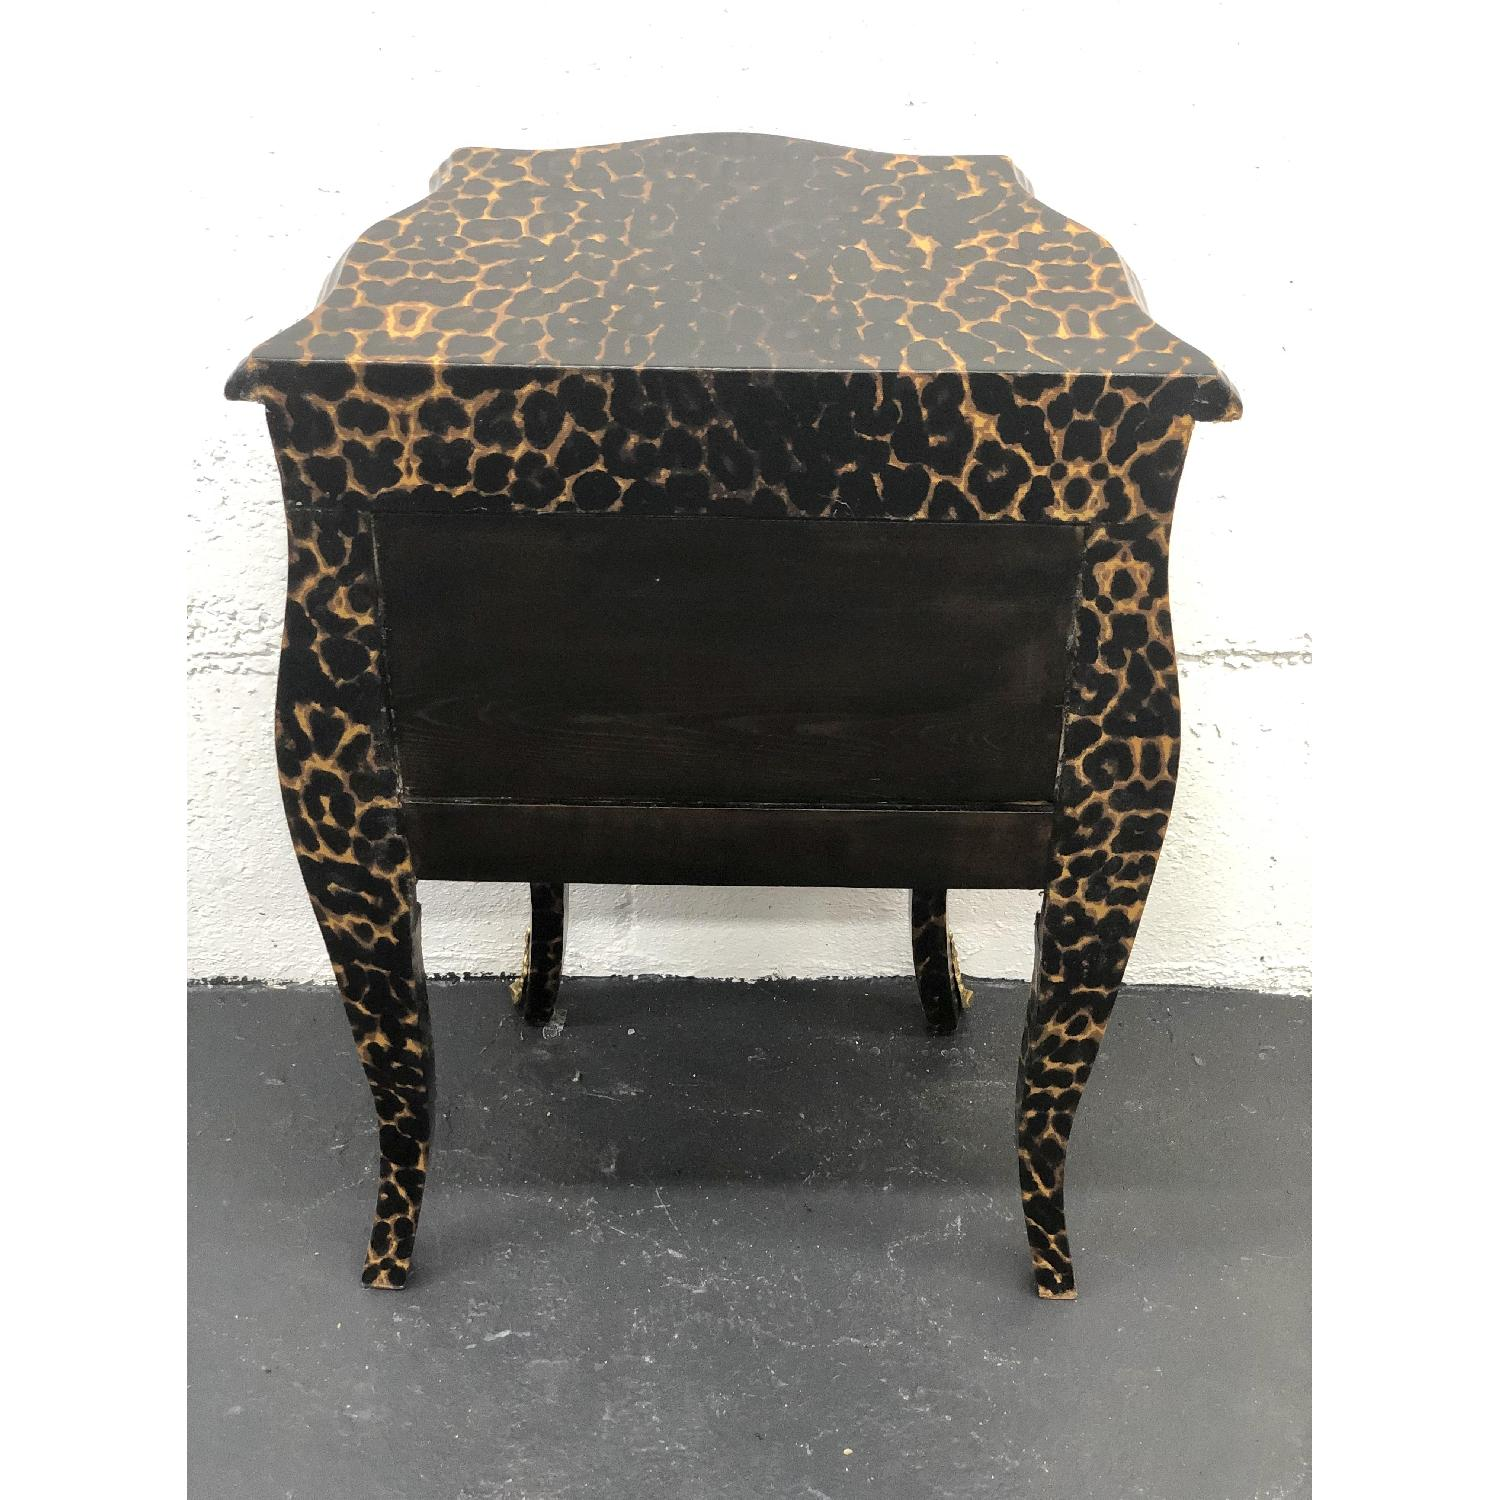 Leopard Print Wood Side Table/Commode